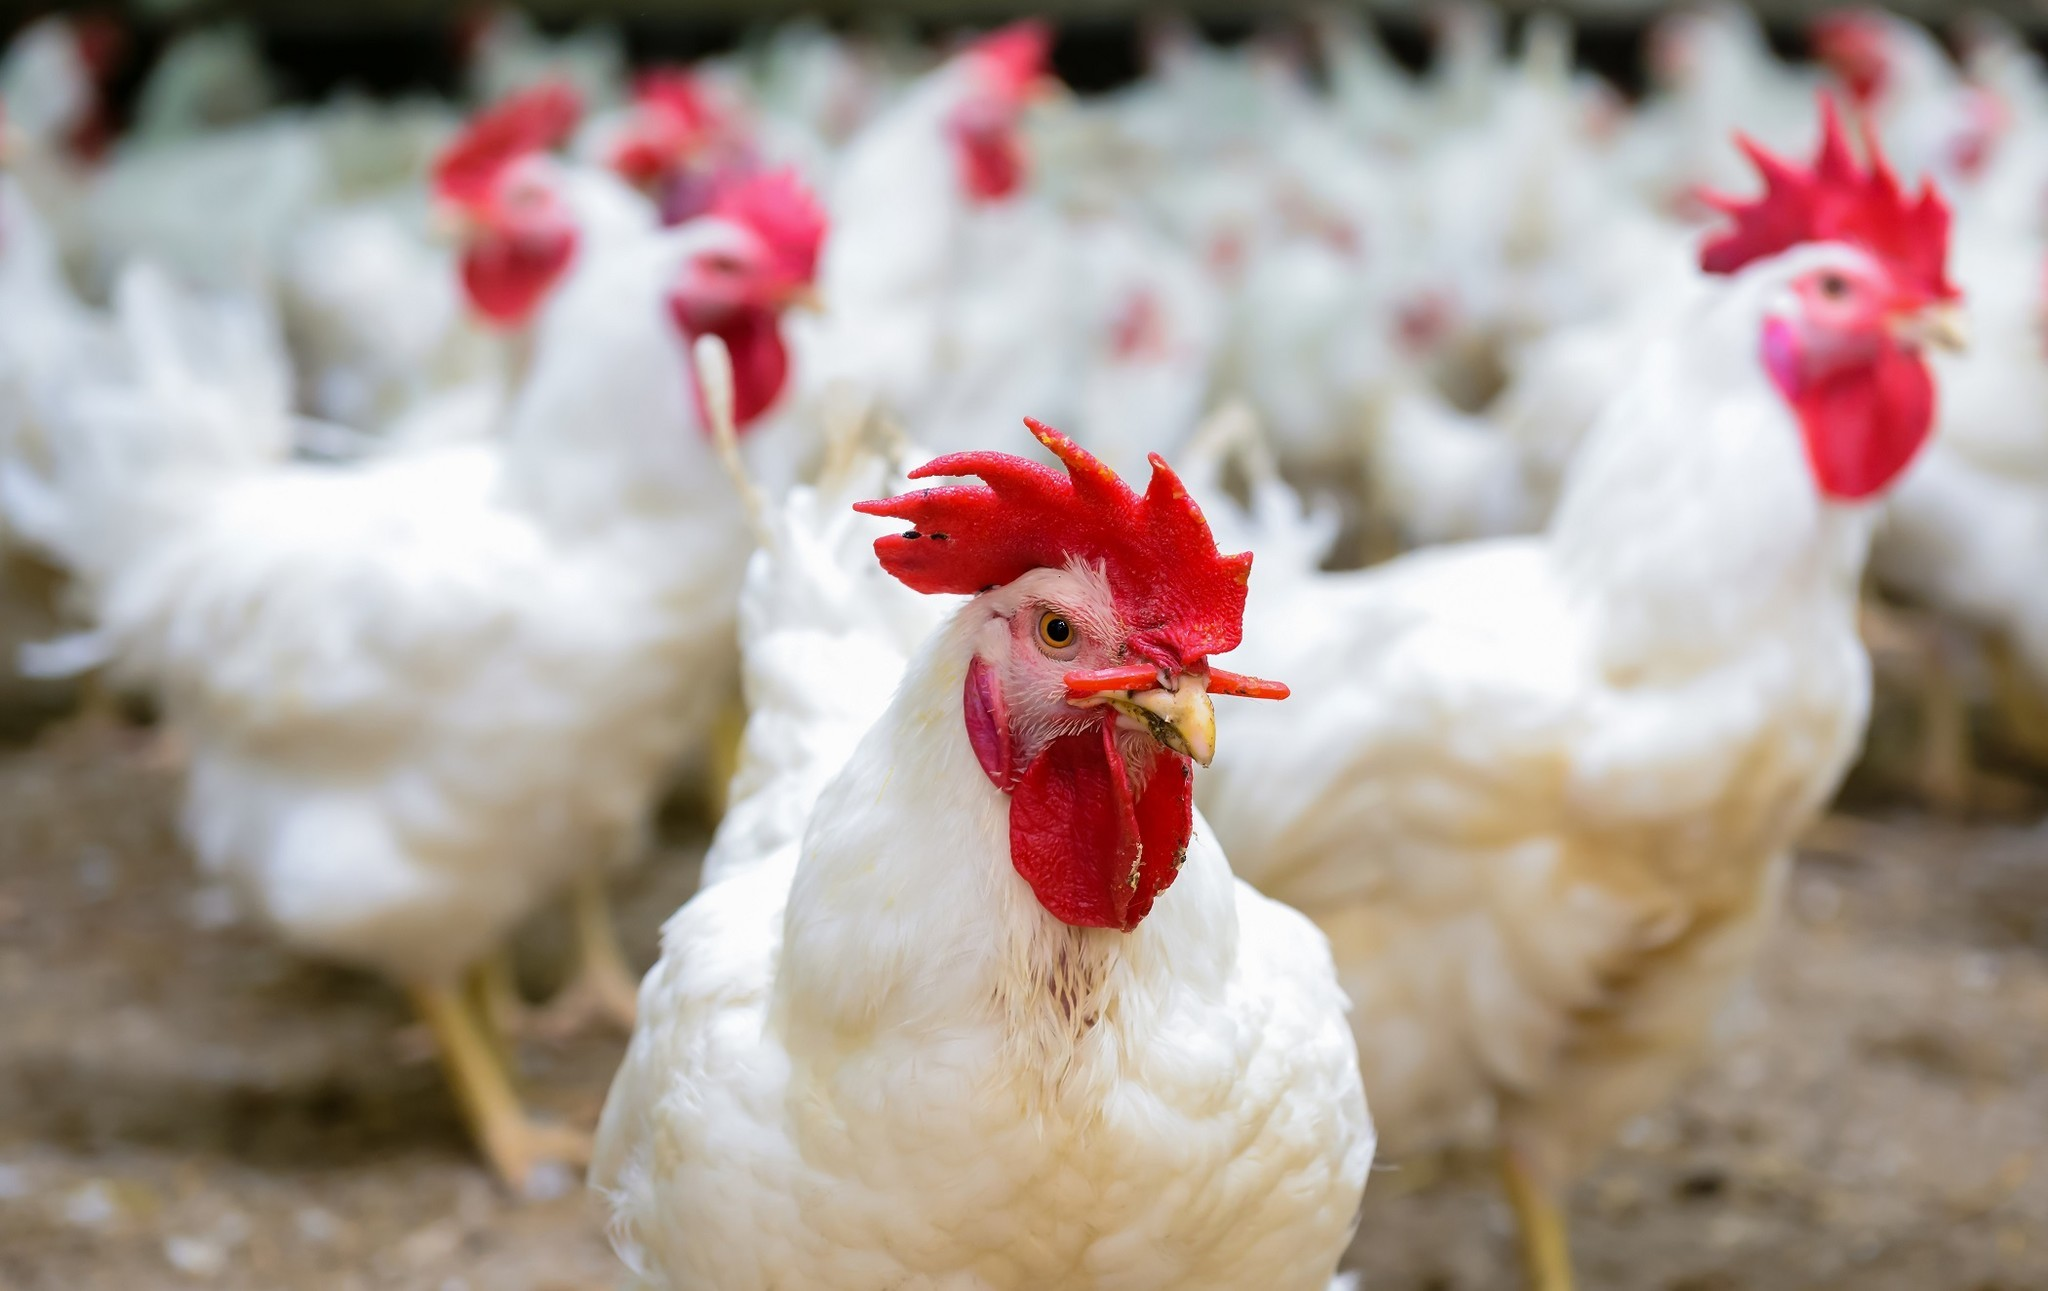 people are getting salmonella from touching live chickens la times